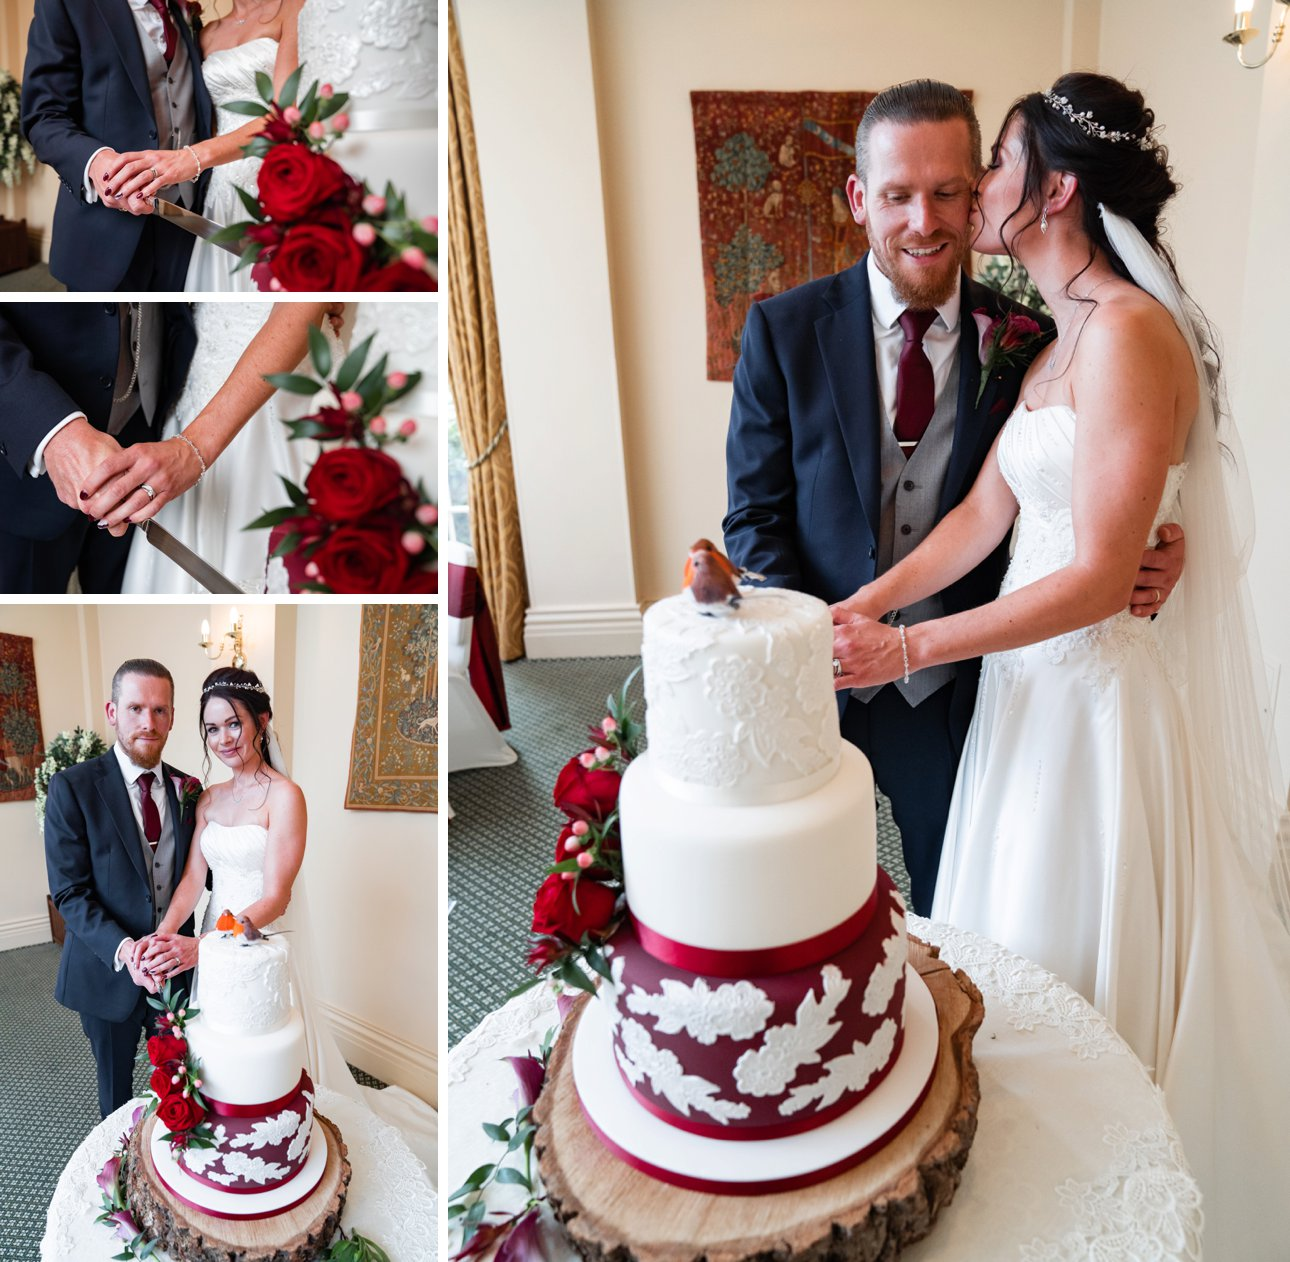 The bride and groom cut their red and white themed robin wedding cake made by Sticky Fingers cake makers, based in Southend.